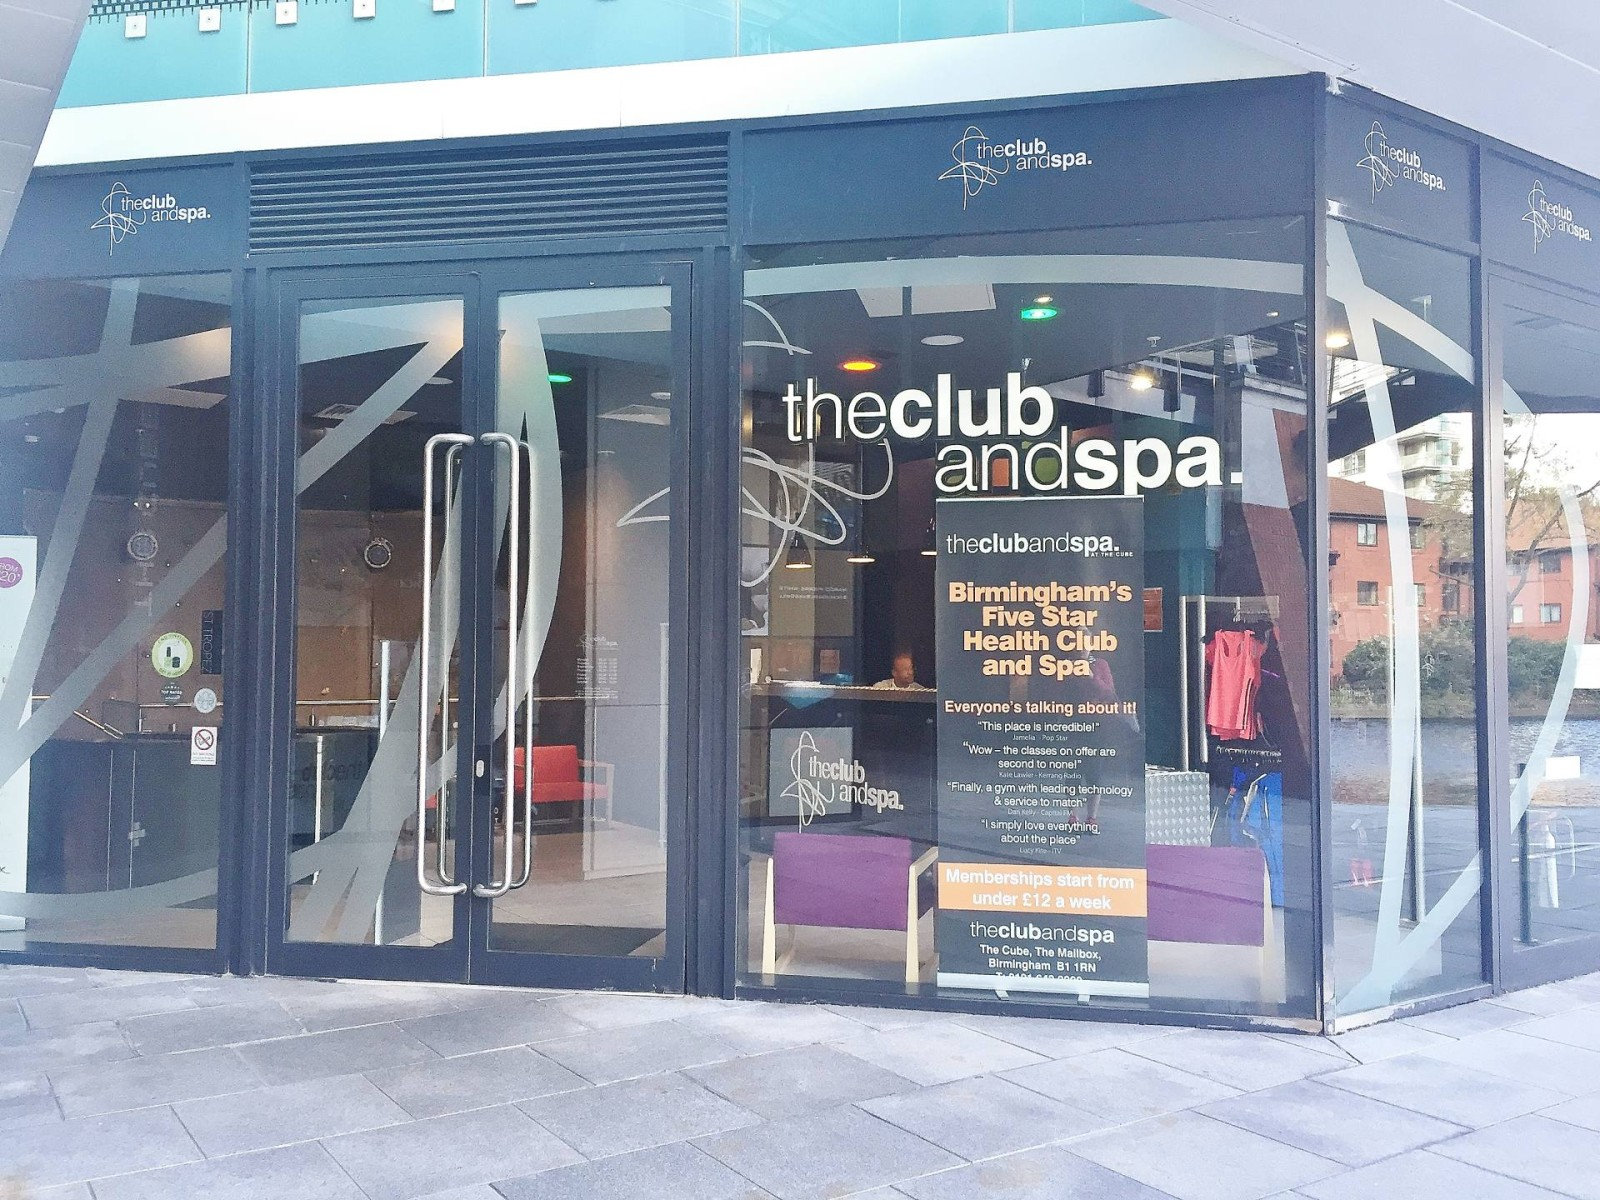 The Club & Spa at The Cube Birmingham